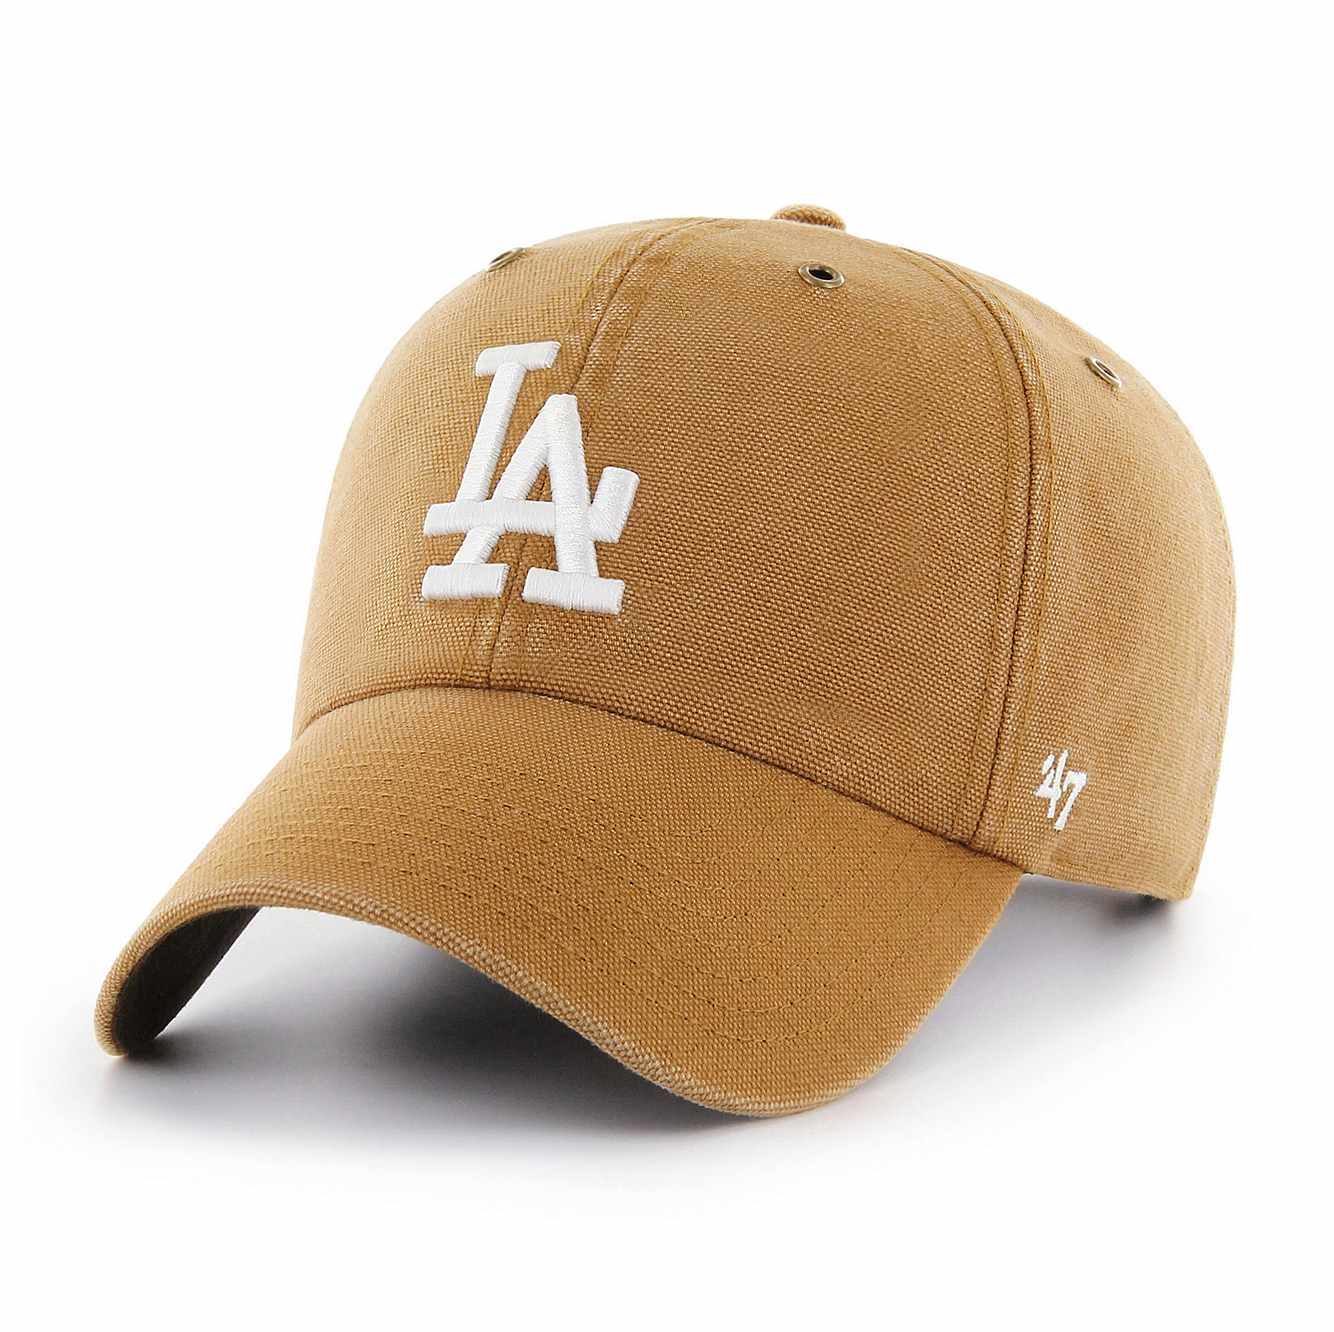 Picture of Los Angeles Dodgers Carhartt x '47 Clean Up in Carhartt Brown